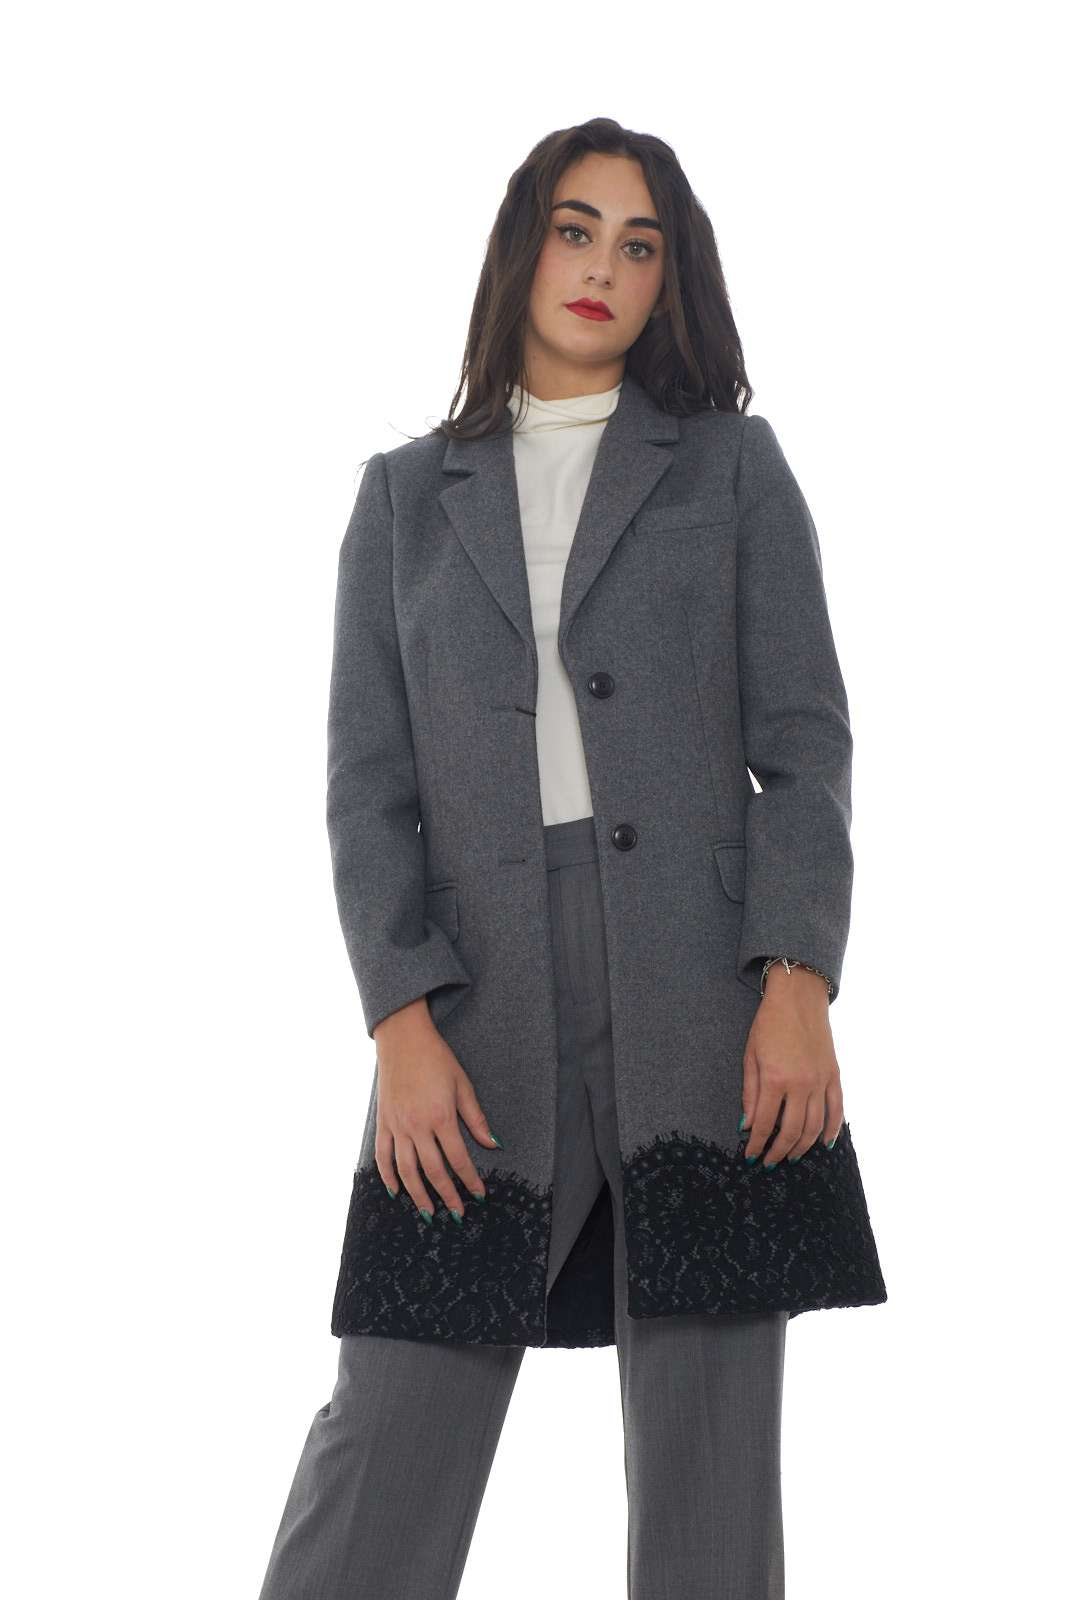 https://www.parmax.com/media/catalog/product/a/i/AI-outlet_parmax-cappotto-donna-Twin-Set-192TP2314-A.jpg